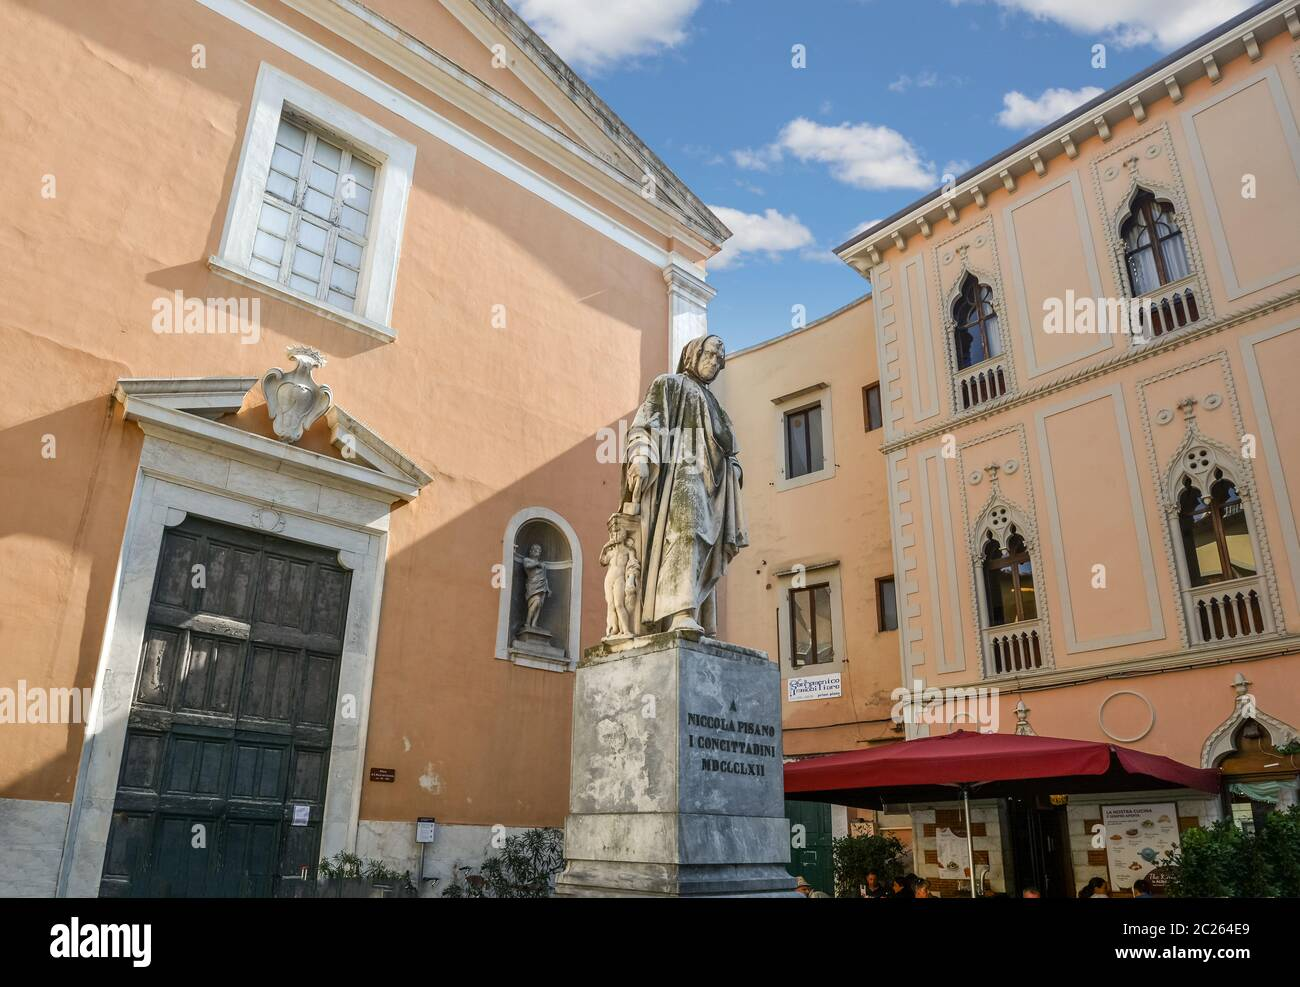 Statue of Italian sculptor Nicola Pisano in a small piazza in the Tuscan city of Pisa, Italy Stock Photo